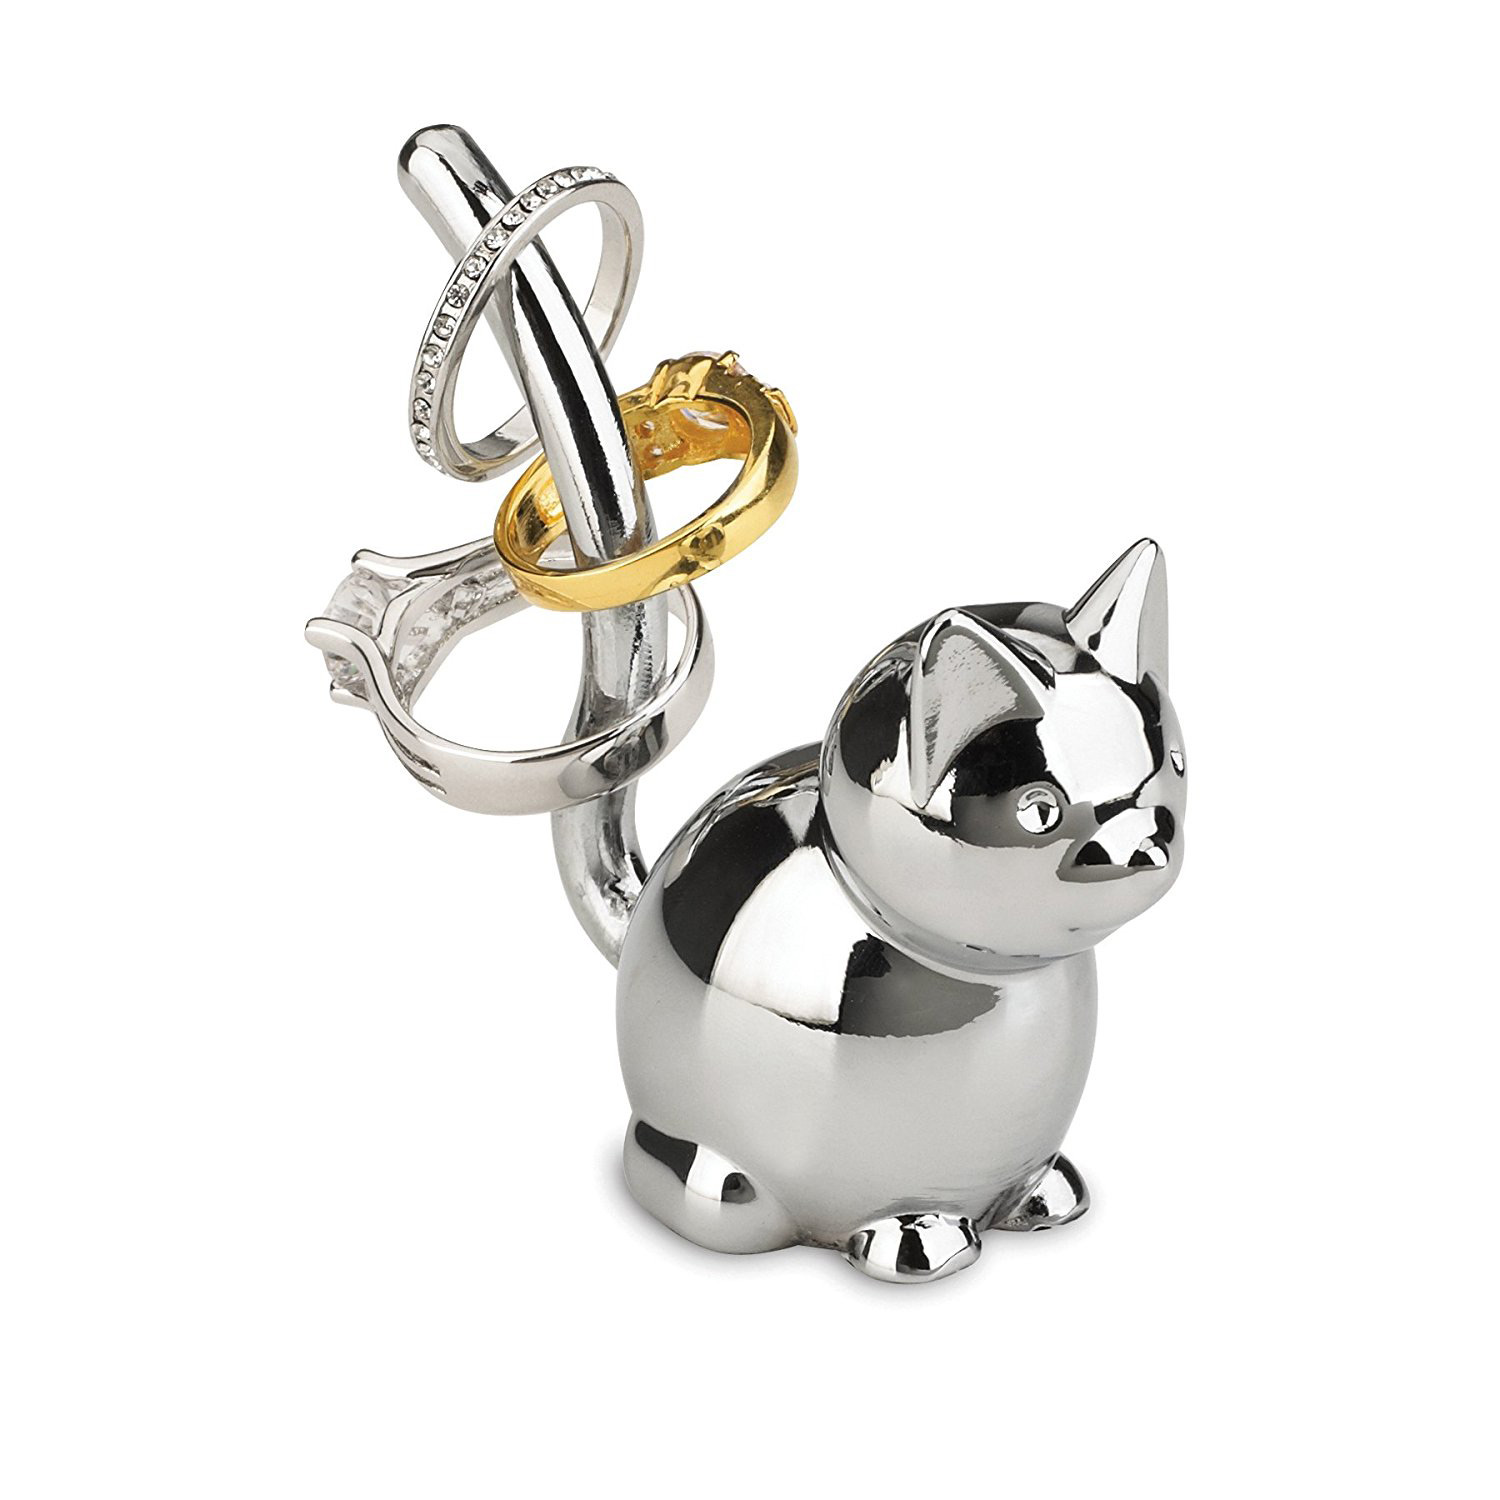 Cute Silver Cat Ring Holder